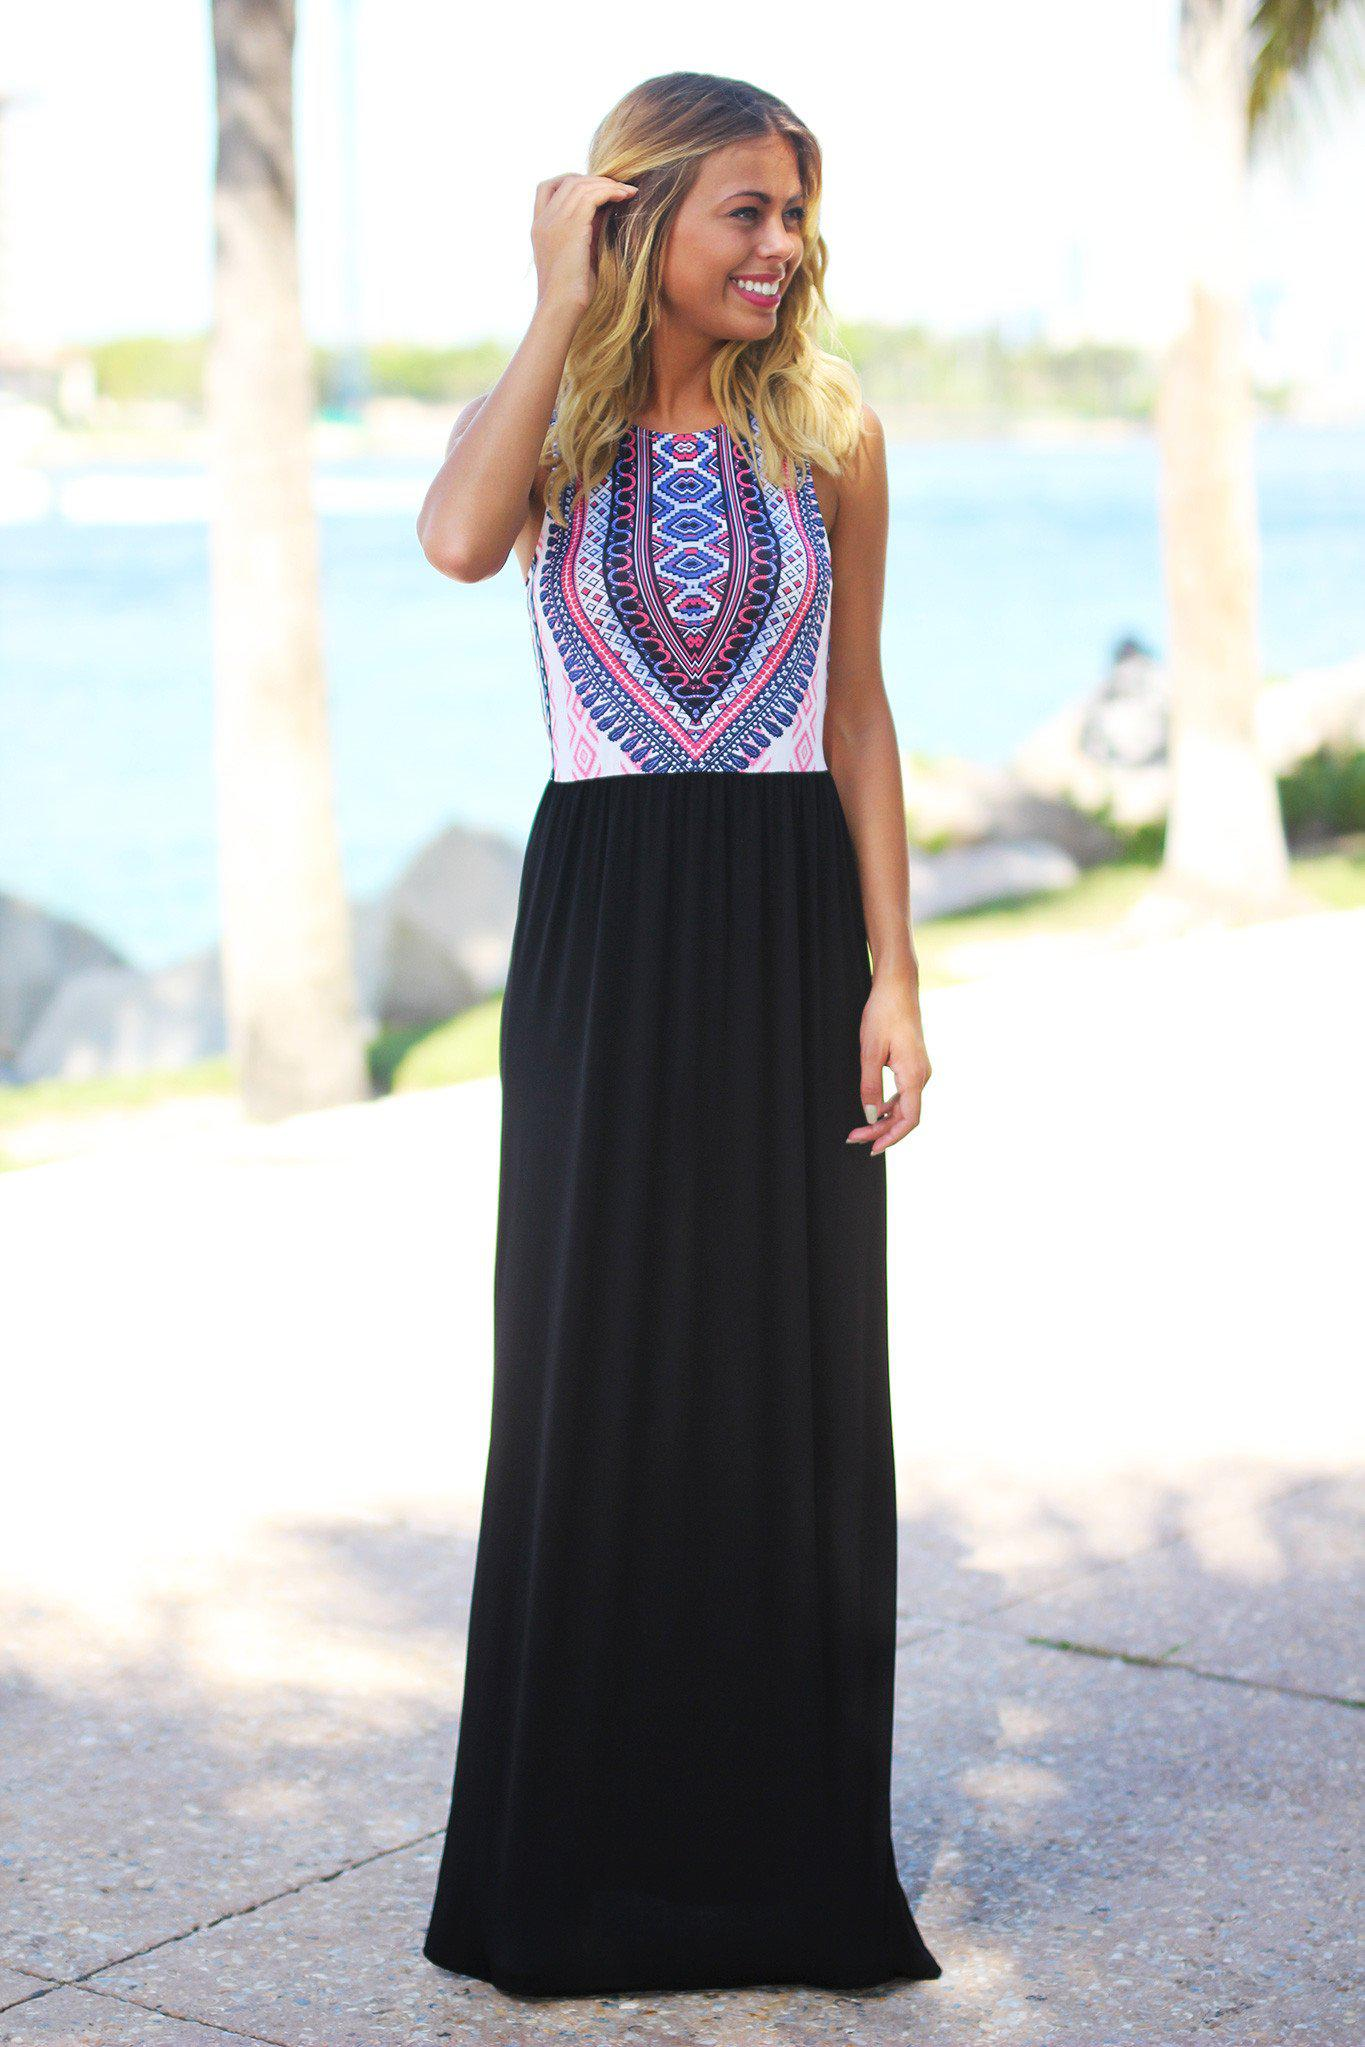 Black Tribal Maxi Dress with Cutout Back | Tribal top maxi dress ...